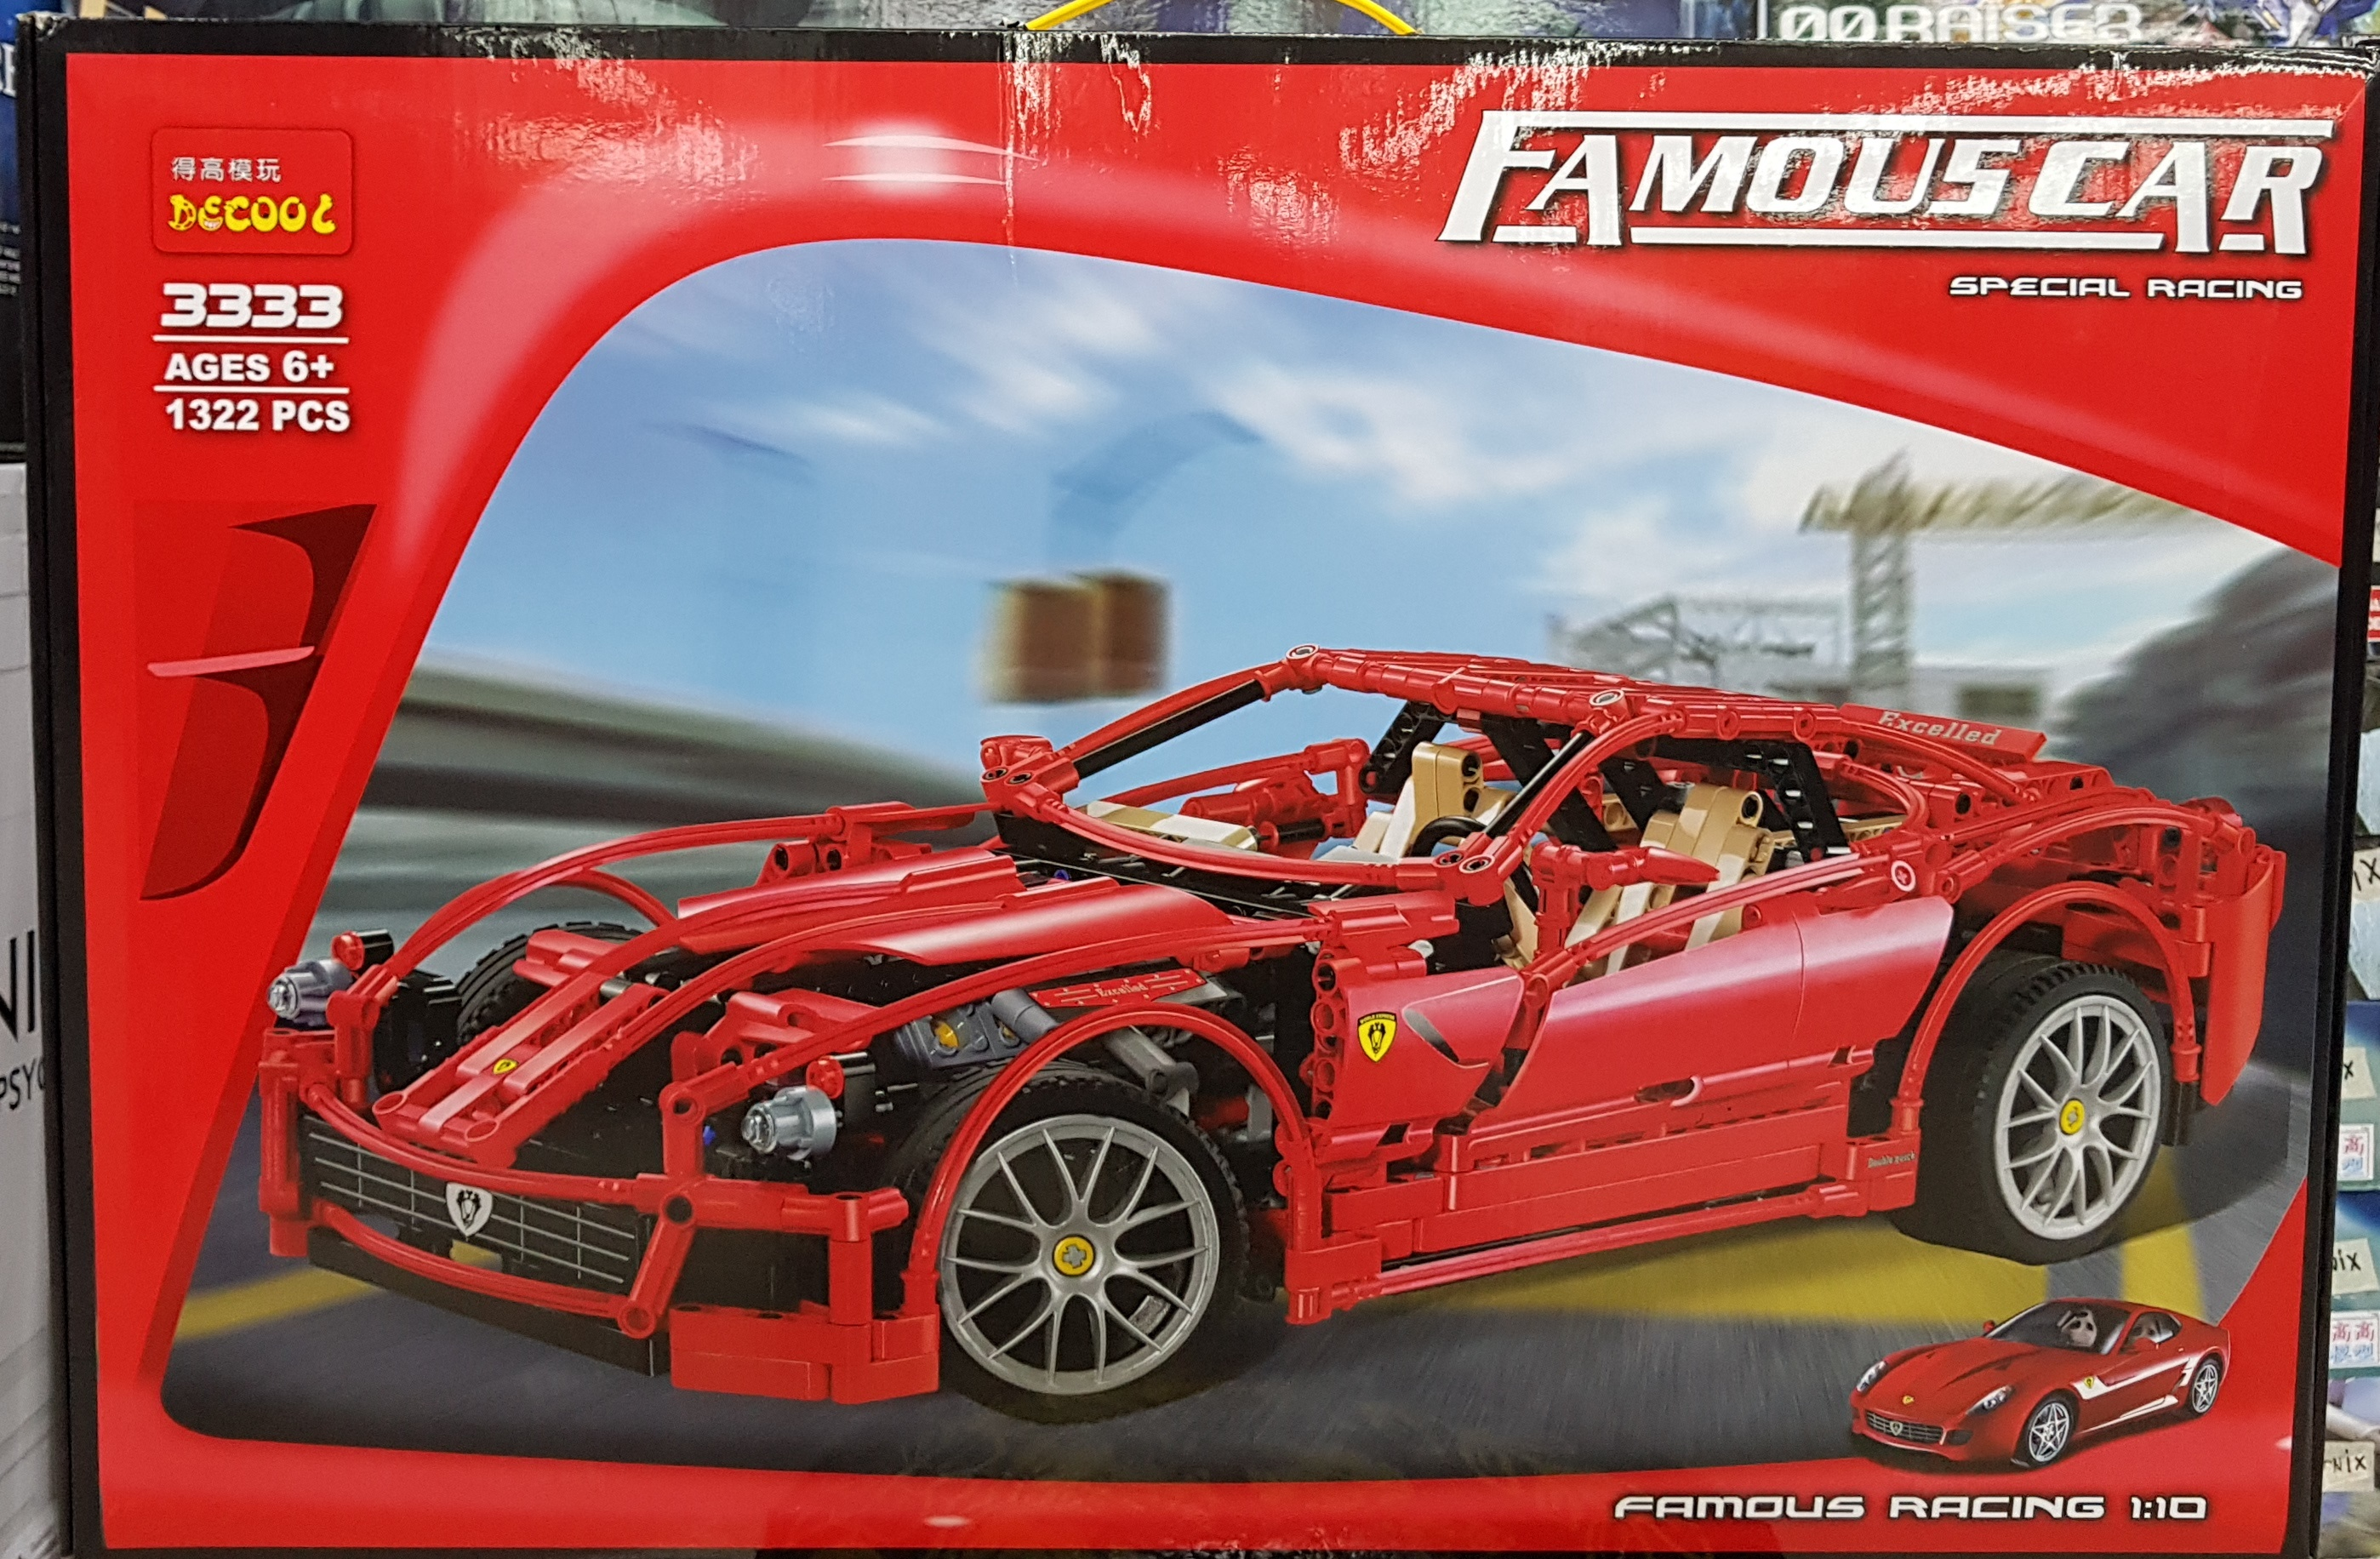 LEPIN FAMOUSCAR SPECIAL RACING 3333 (1323ชิ้น)